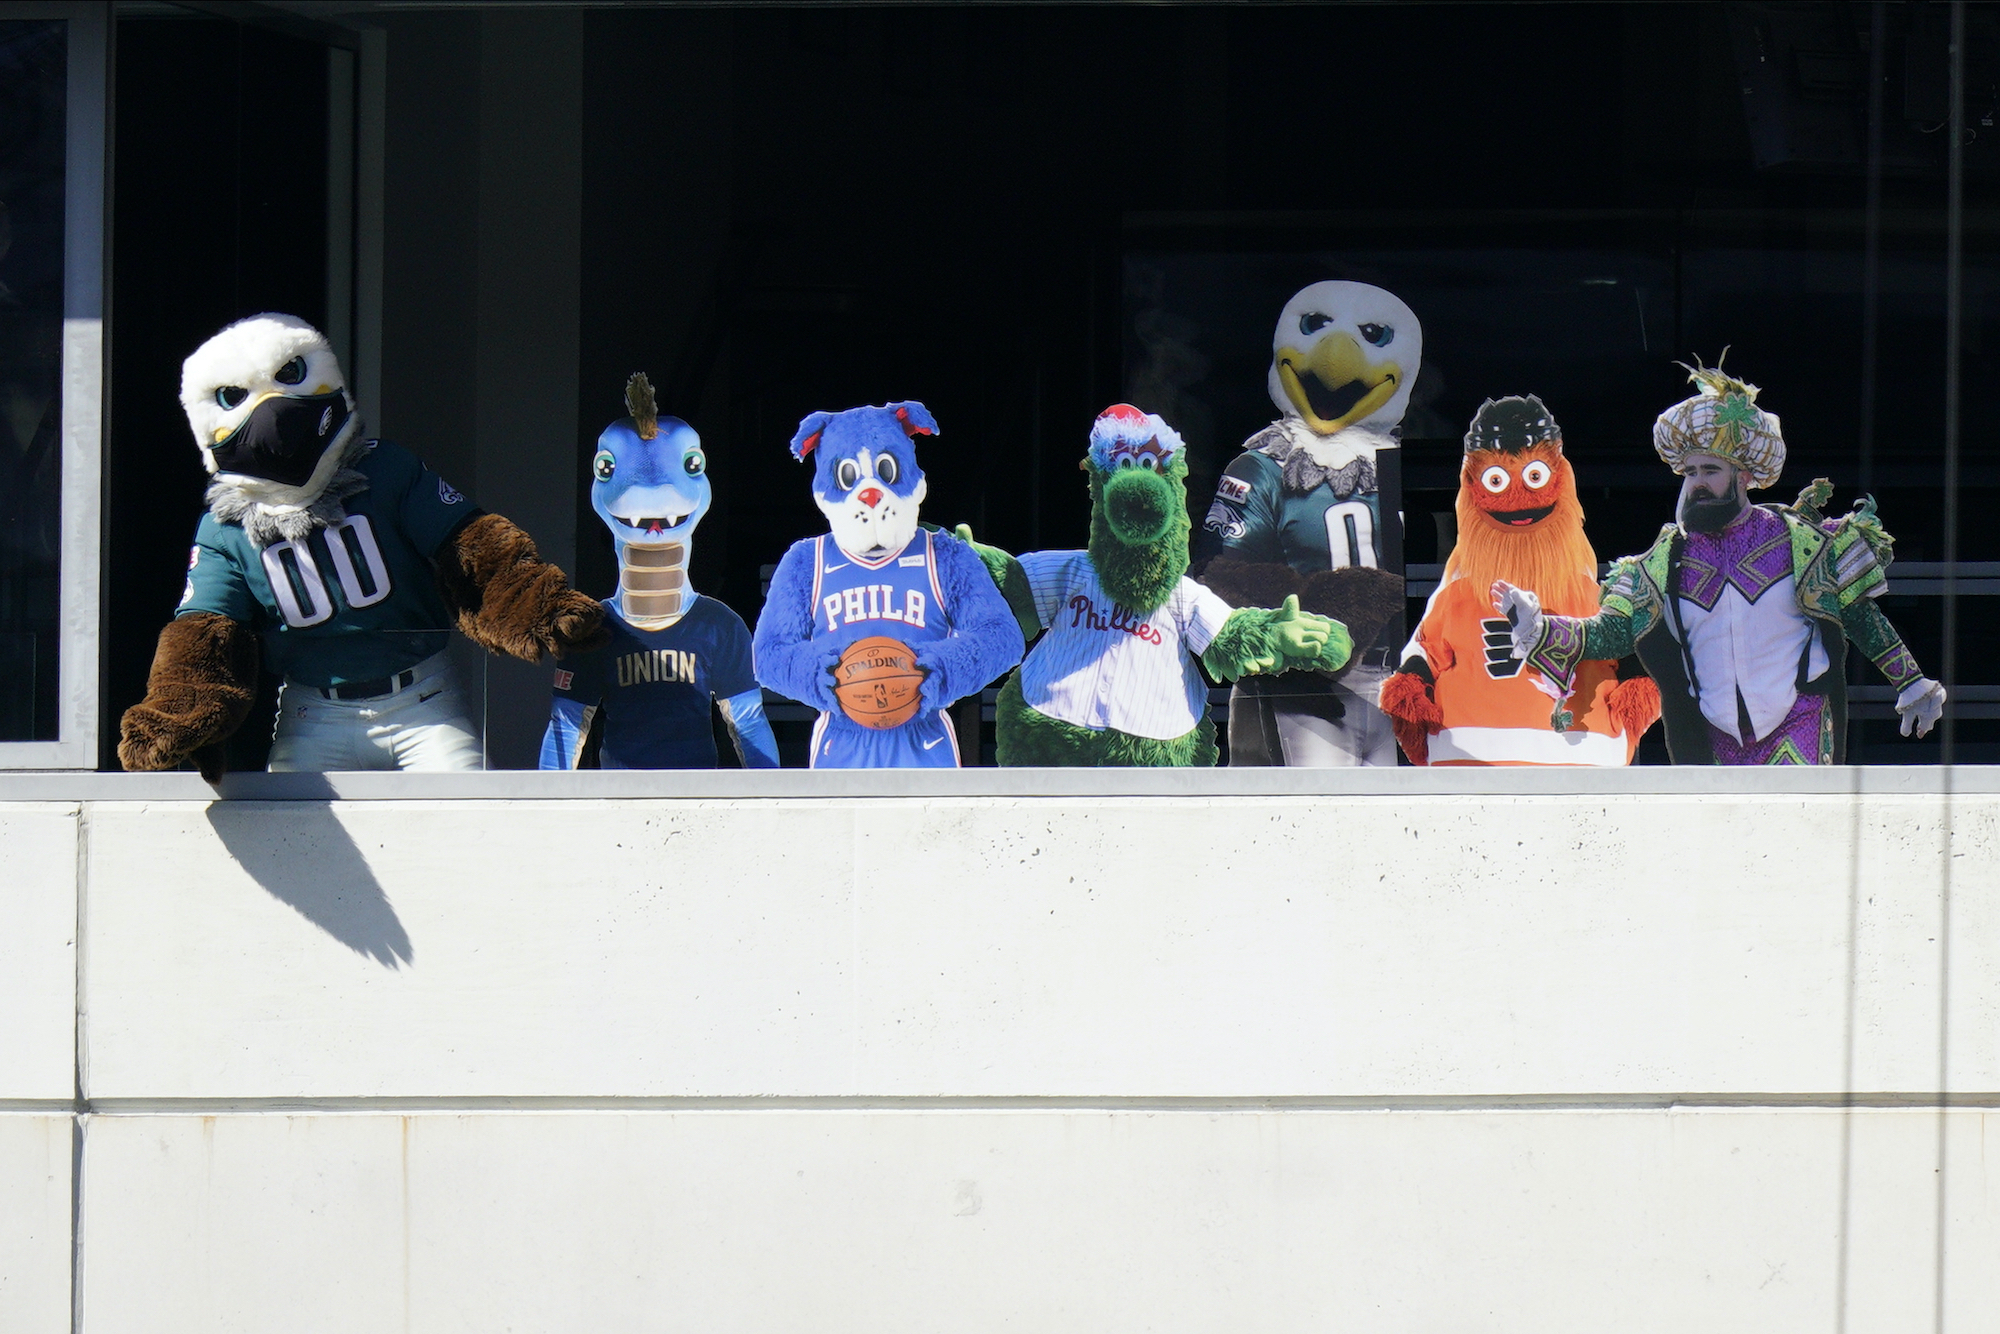 Philadelphia mascots appear as cardboard cut-out fans at Lincoln Financial Field